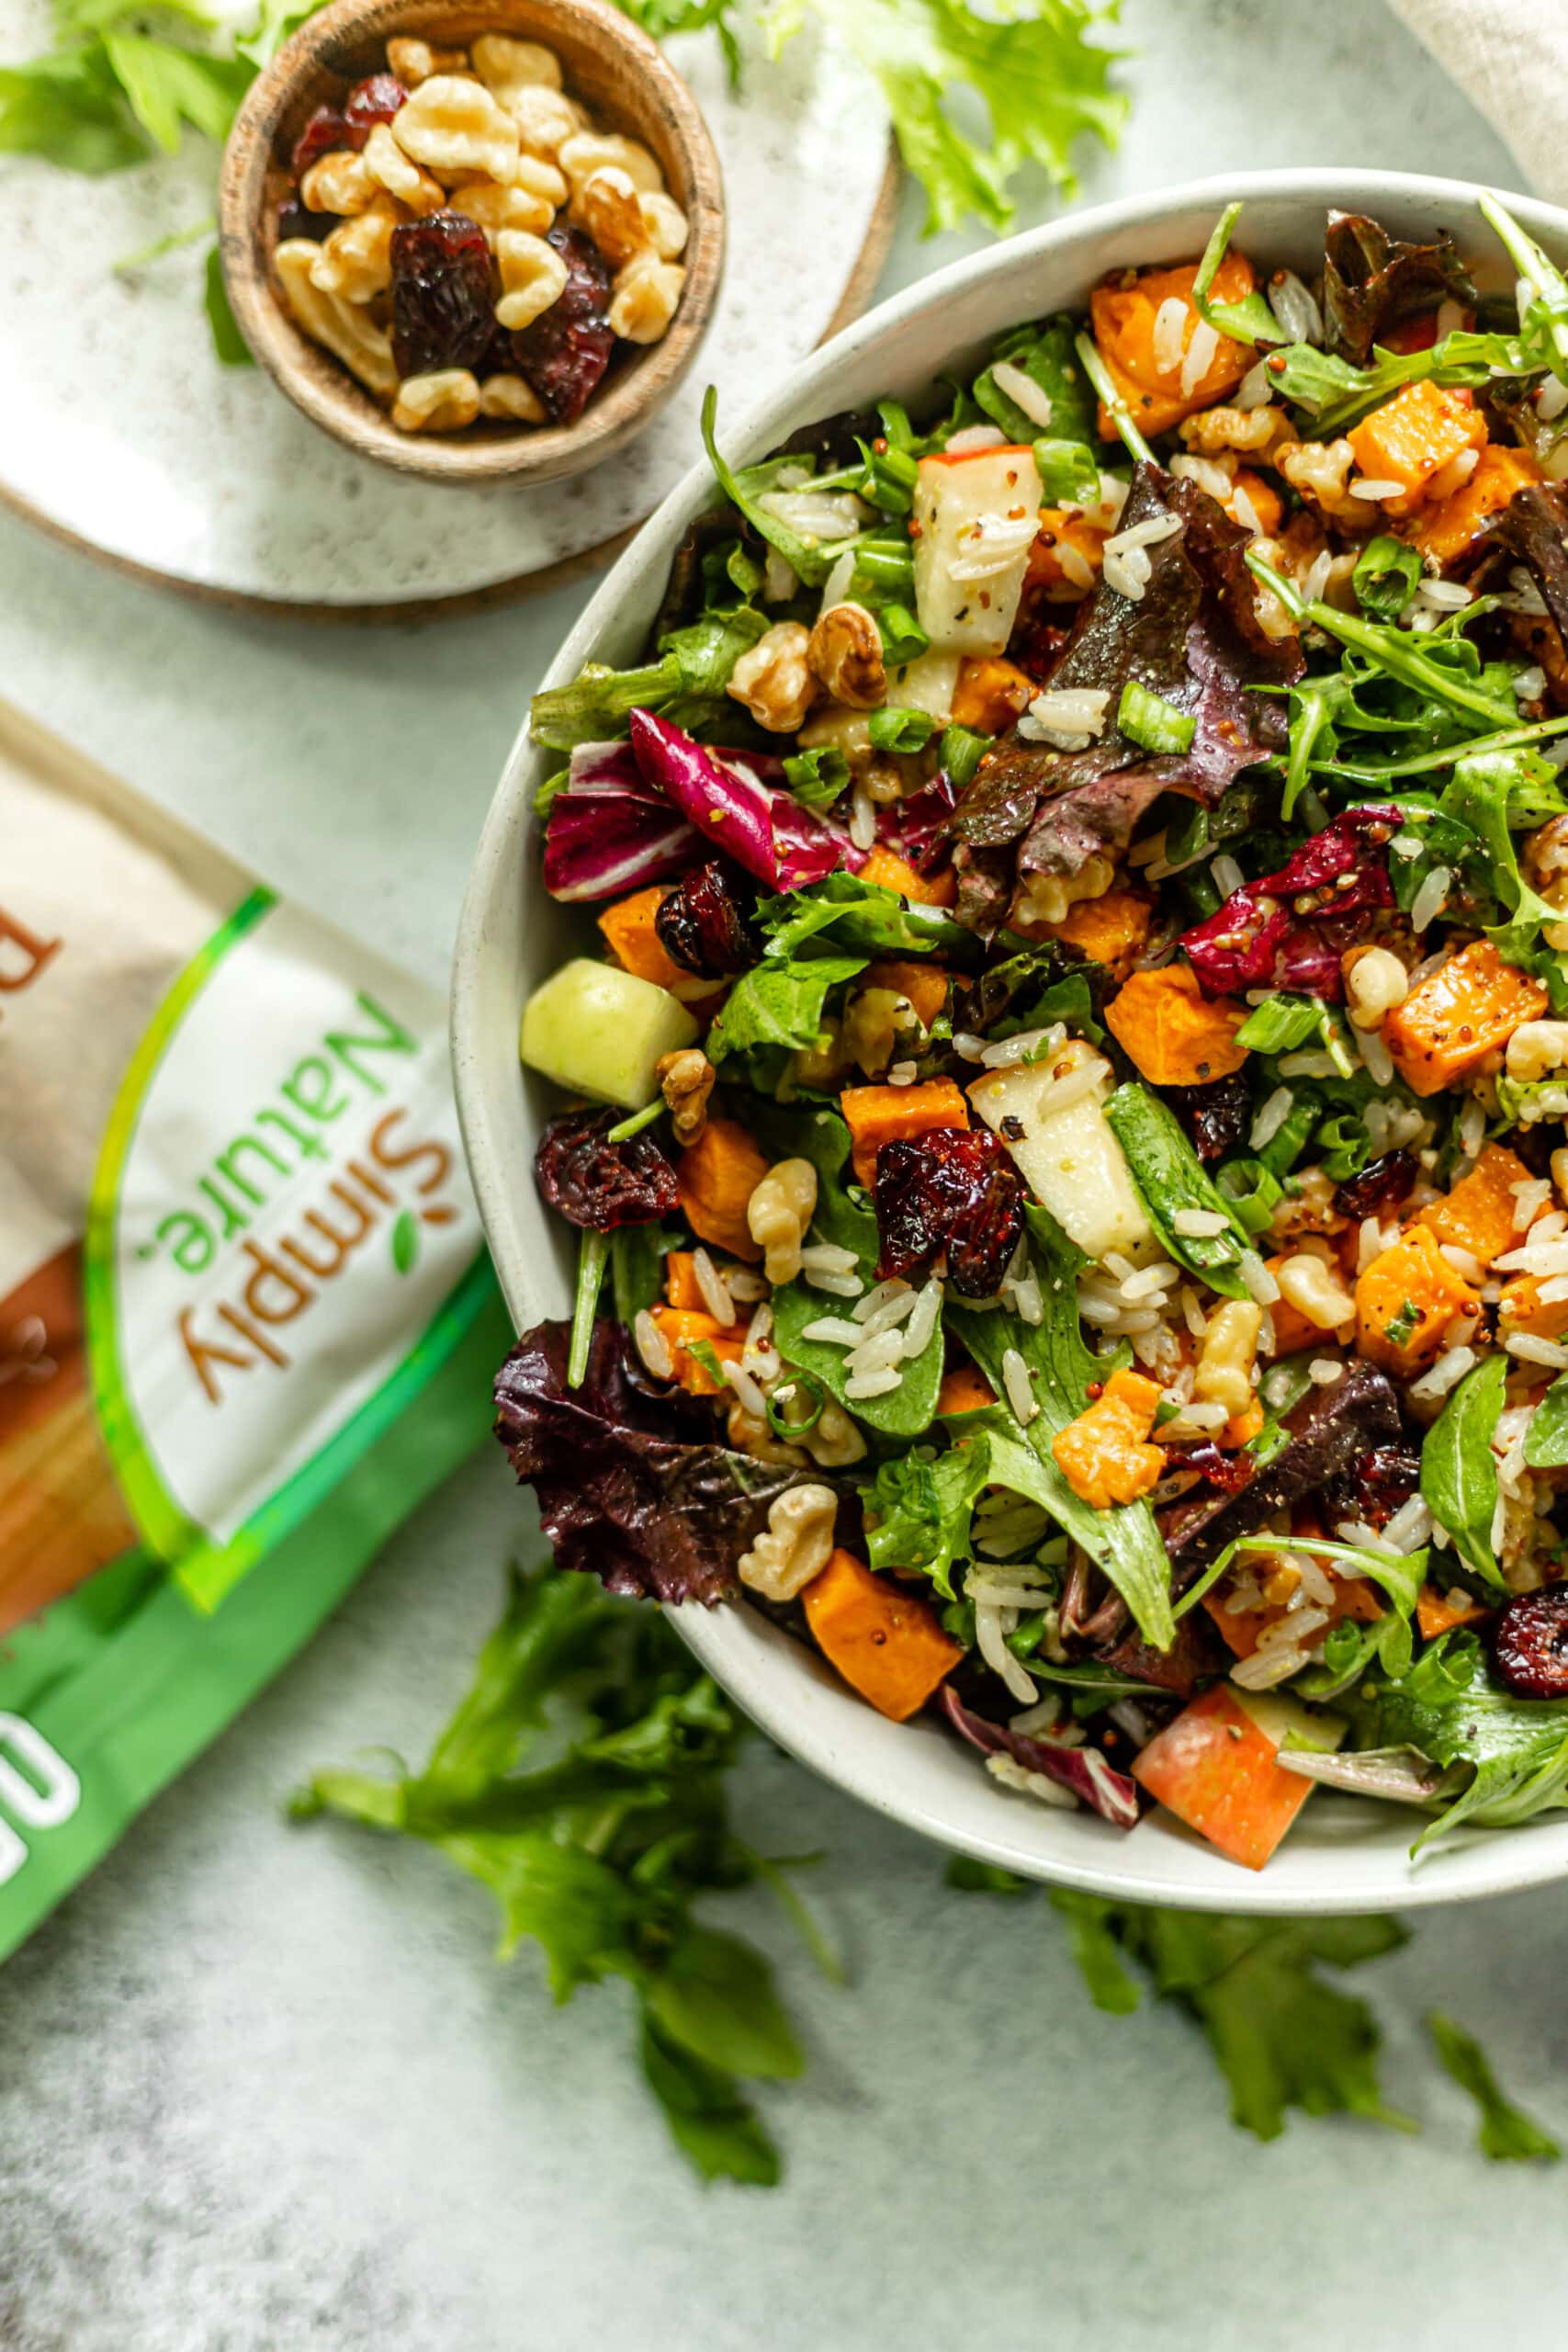 Roasted Sweet Potato Salad With Honey Dijon Dressing All The Healthy Things